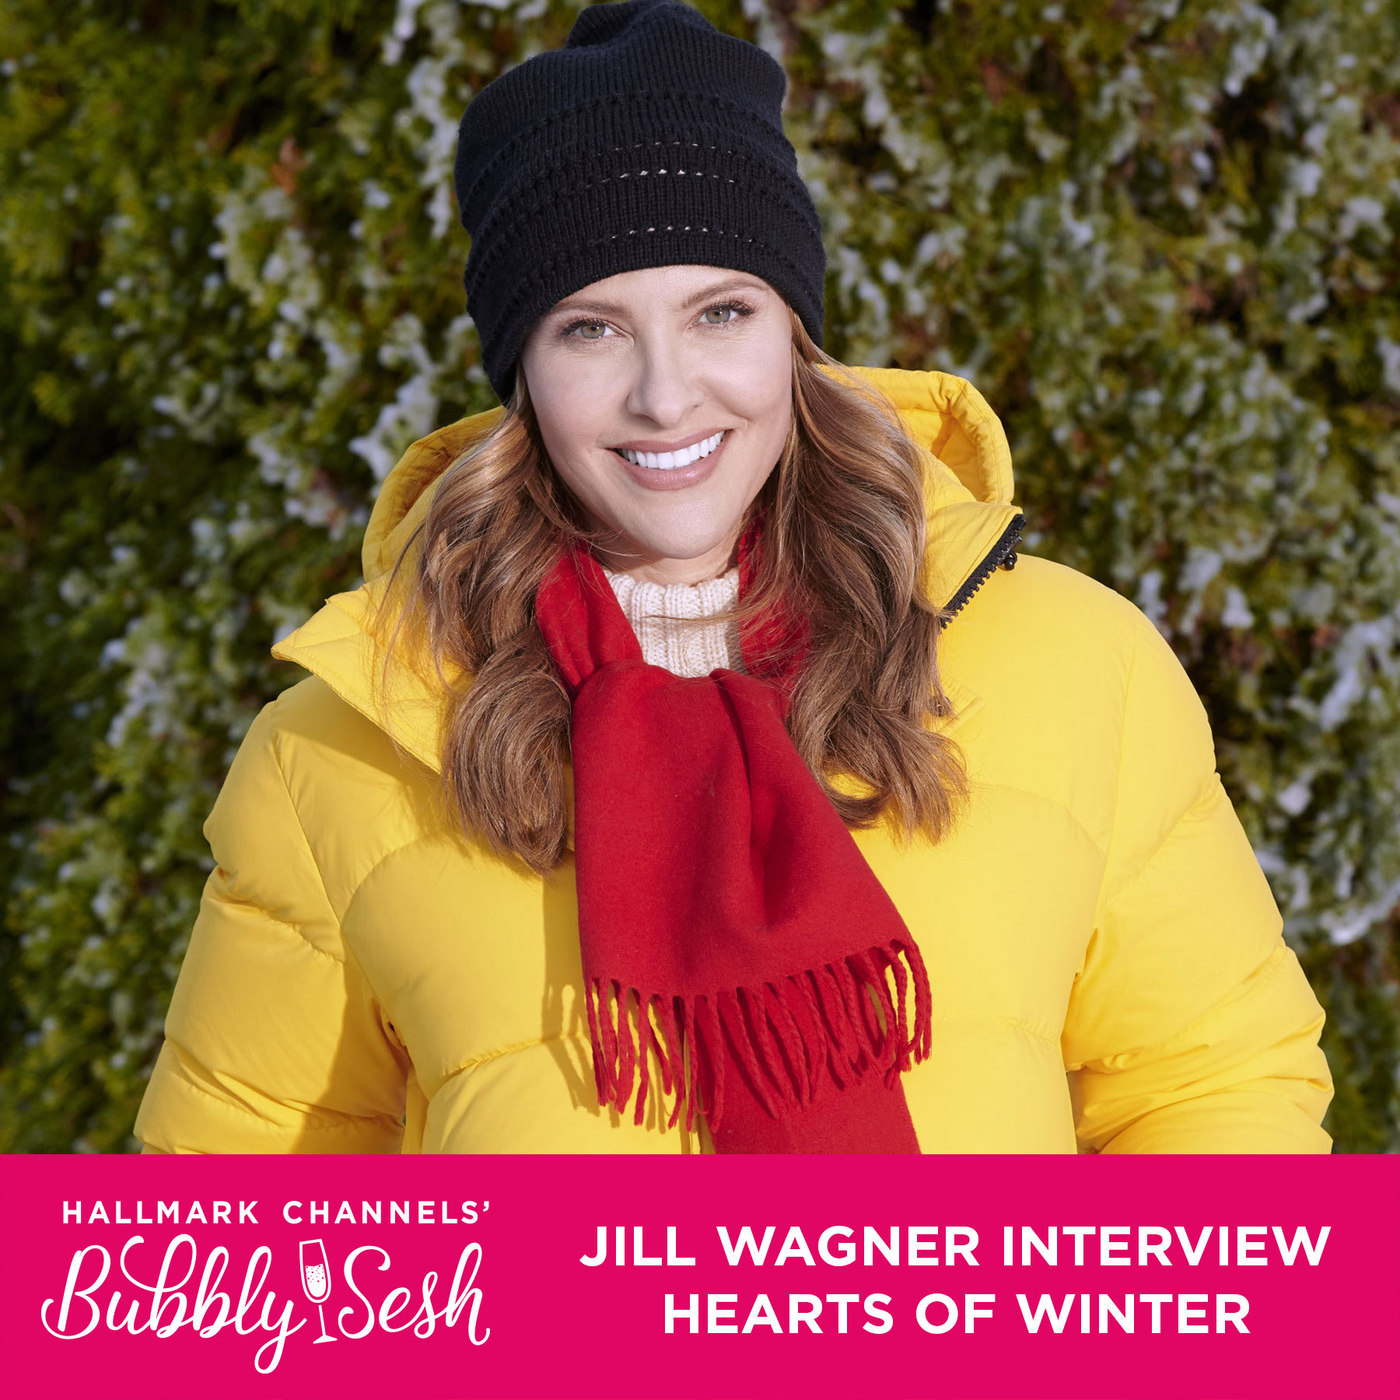 Jill Wagner Interview, Hearts of Winter